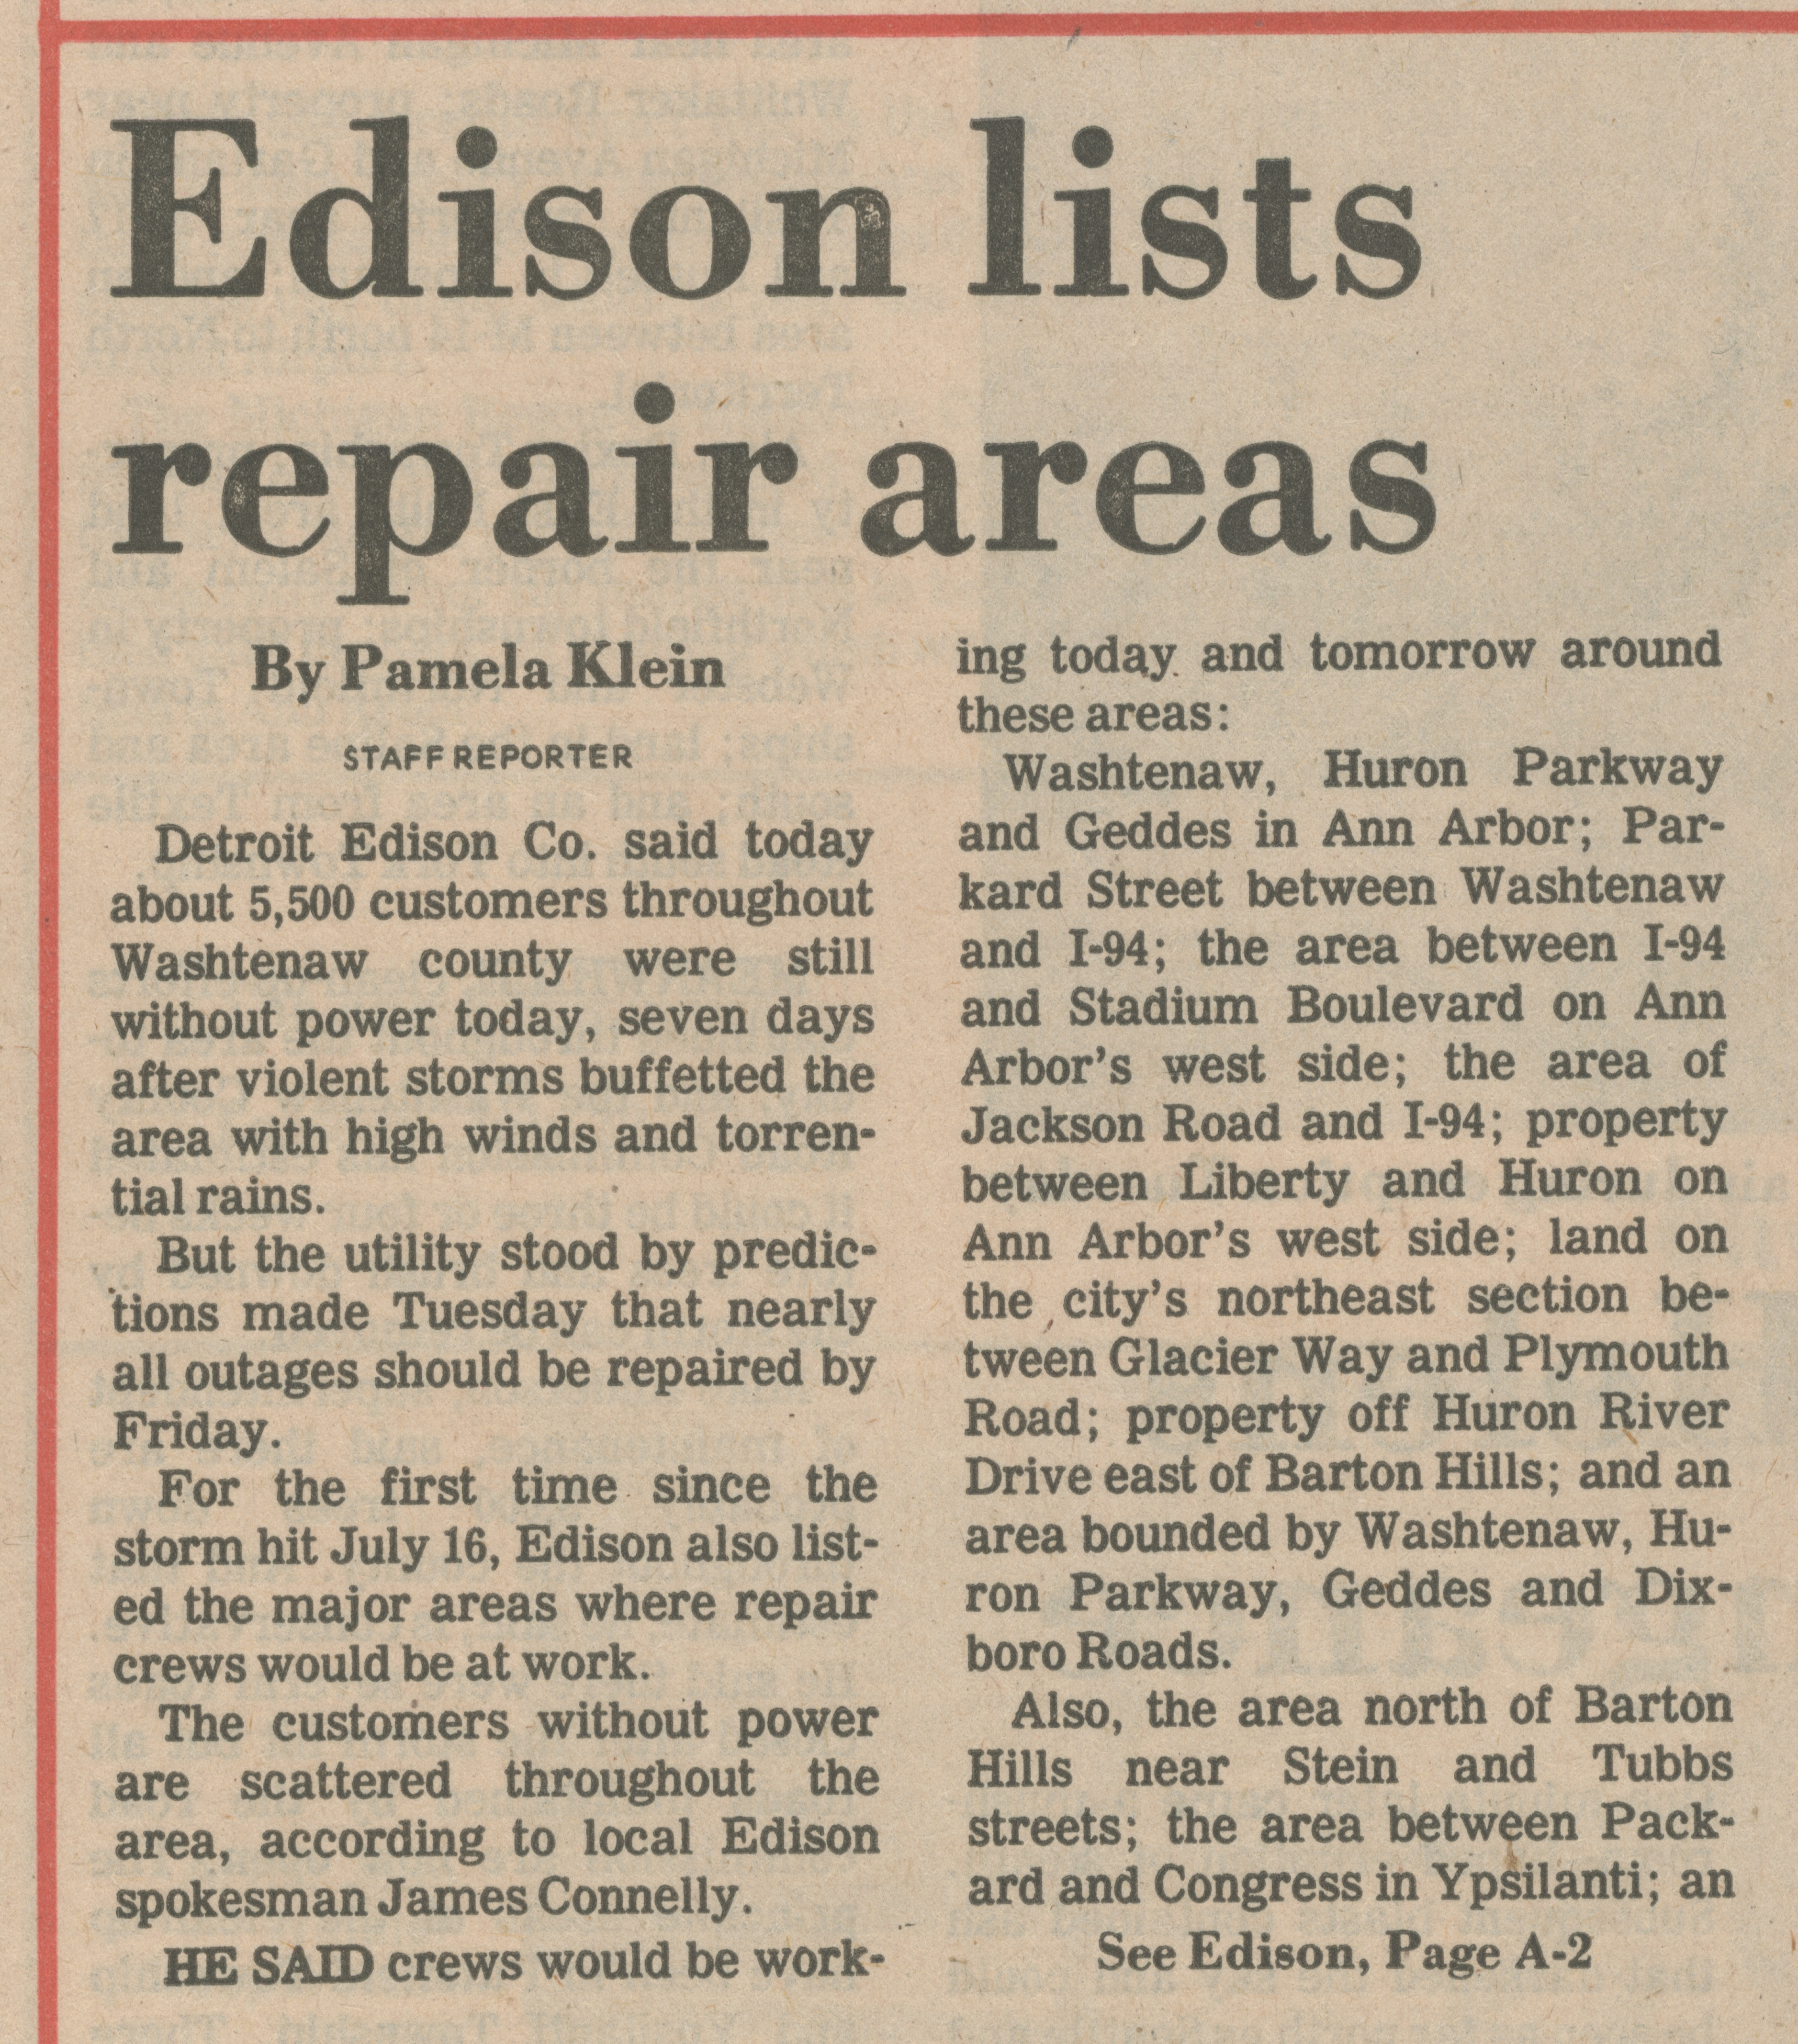 Edison lists repair areas image